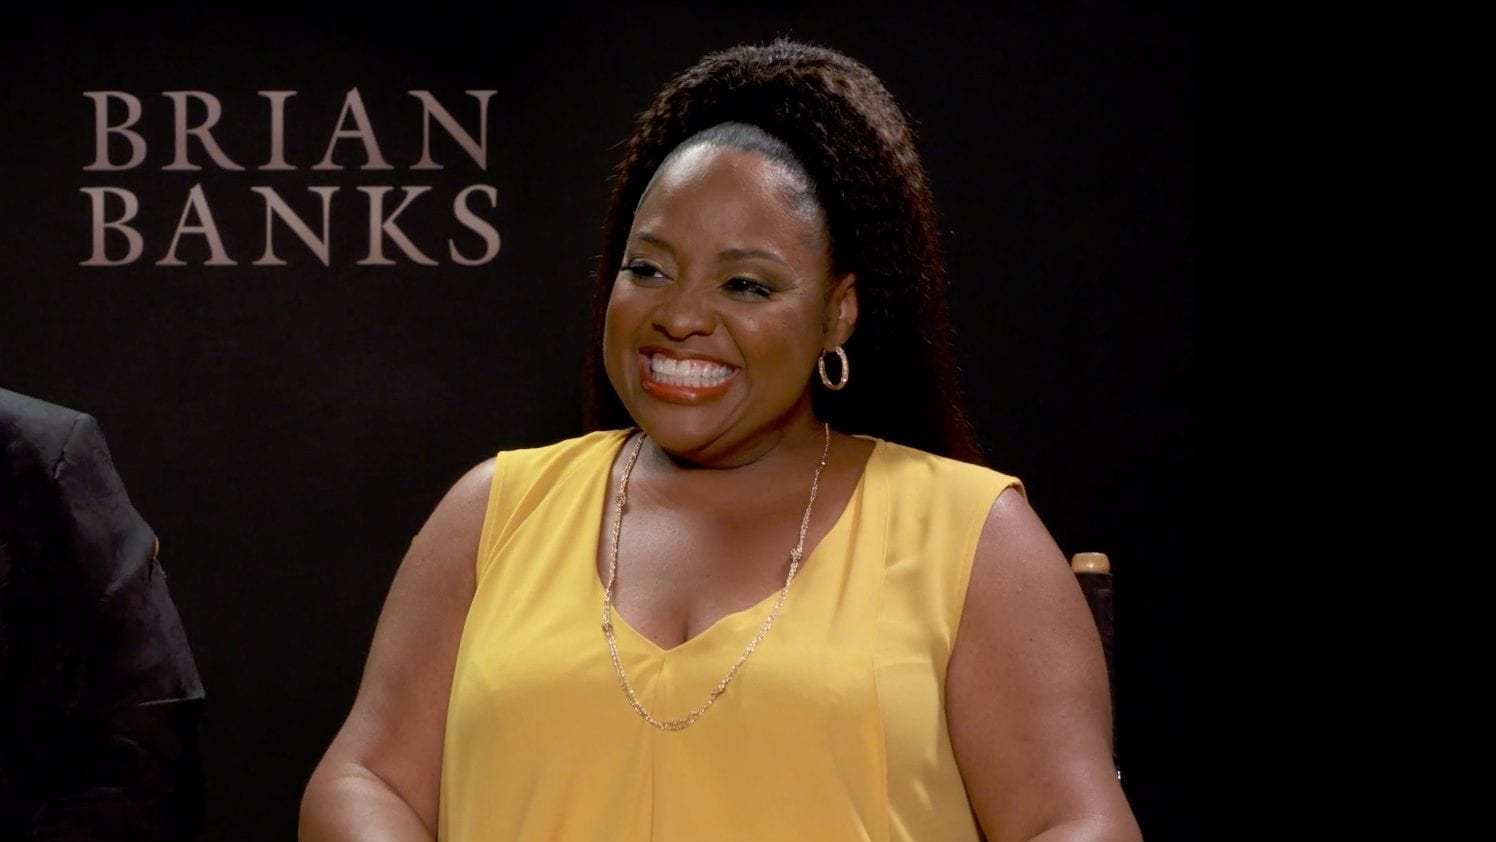 WATCH: Sherri Shepherd reveals why she fought for her role in 'Brian Banks'